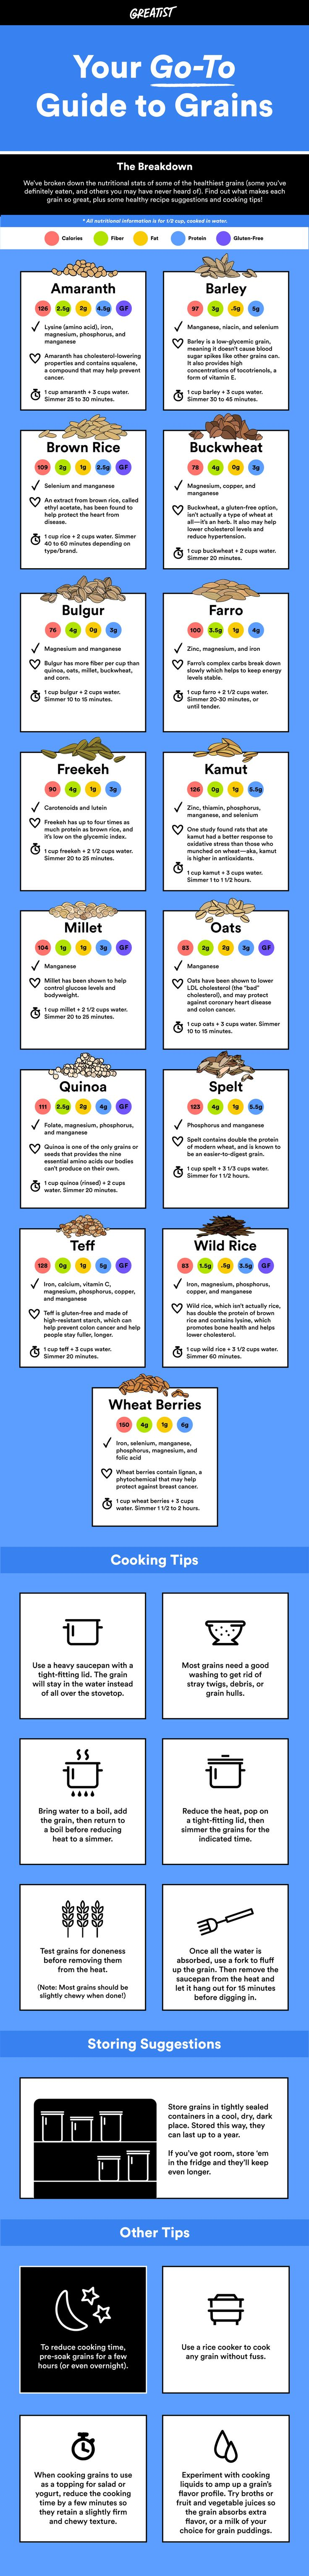 We've broken down the nutritional stats and cooking tips of the world's healthiest grains. #greatist http://greatist.com/health/guide-to-healthier-grains-infographic